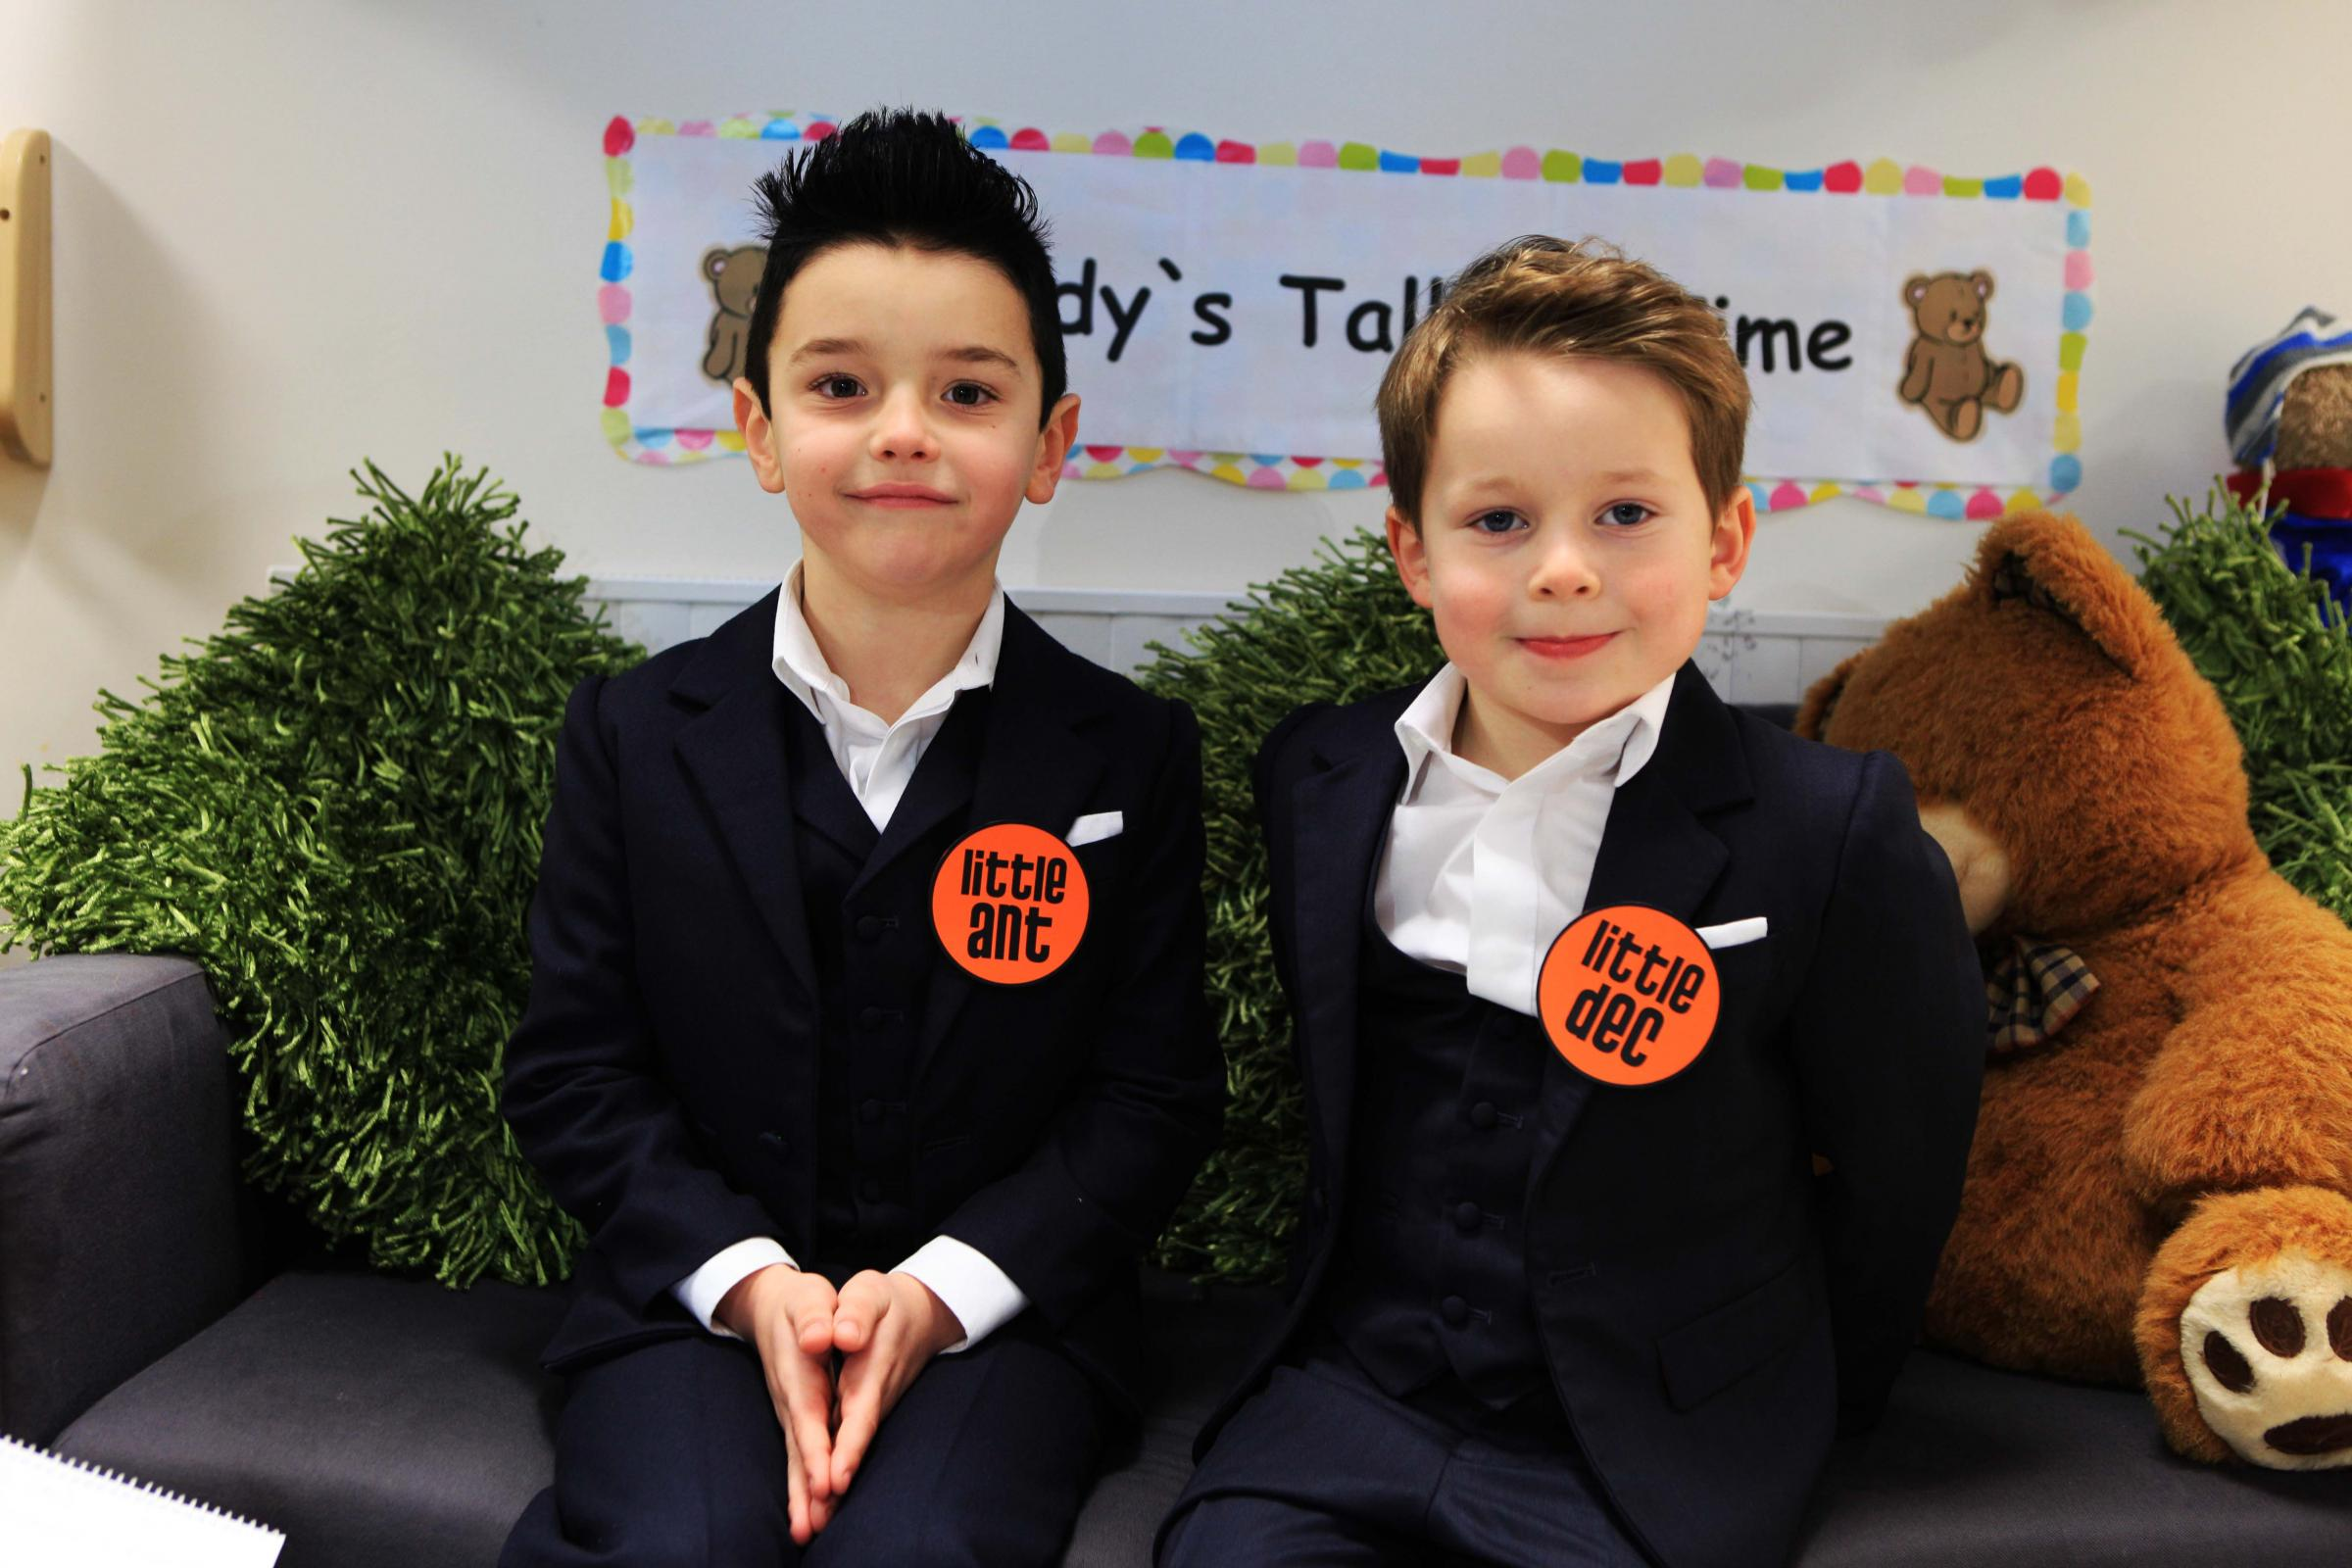 Little Ant (Neil Overend) and Little Dec (Haydn Reid) opened the newly refurbished nursery and reception area at Broom Cottages Primary and Nursery School in Ferryhill today